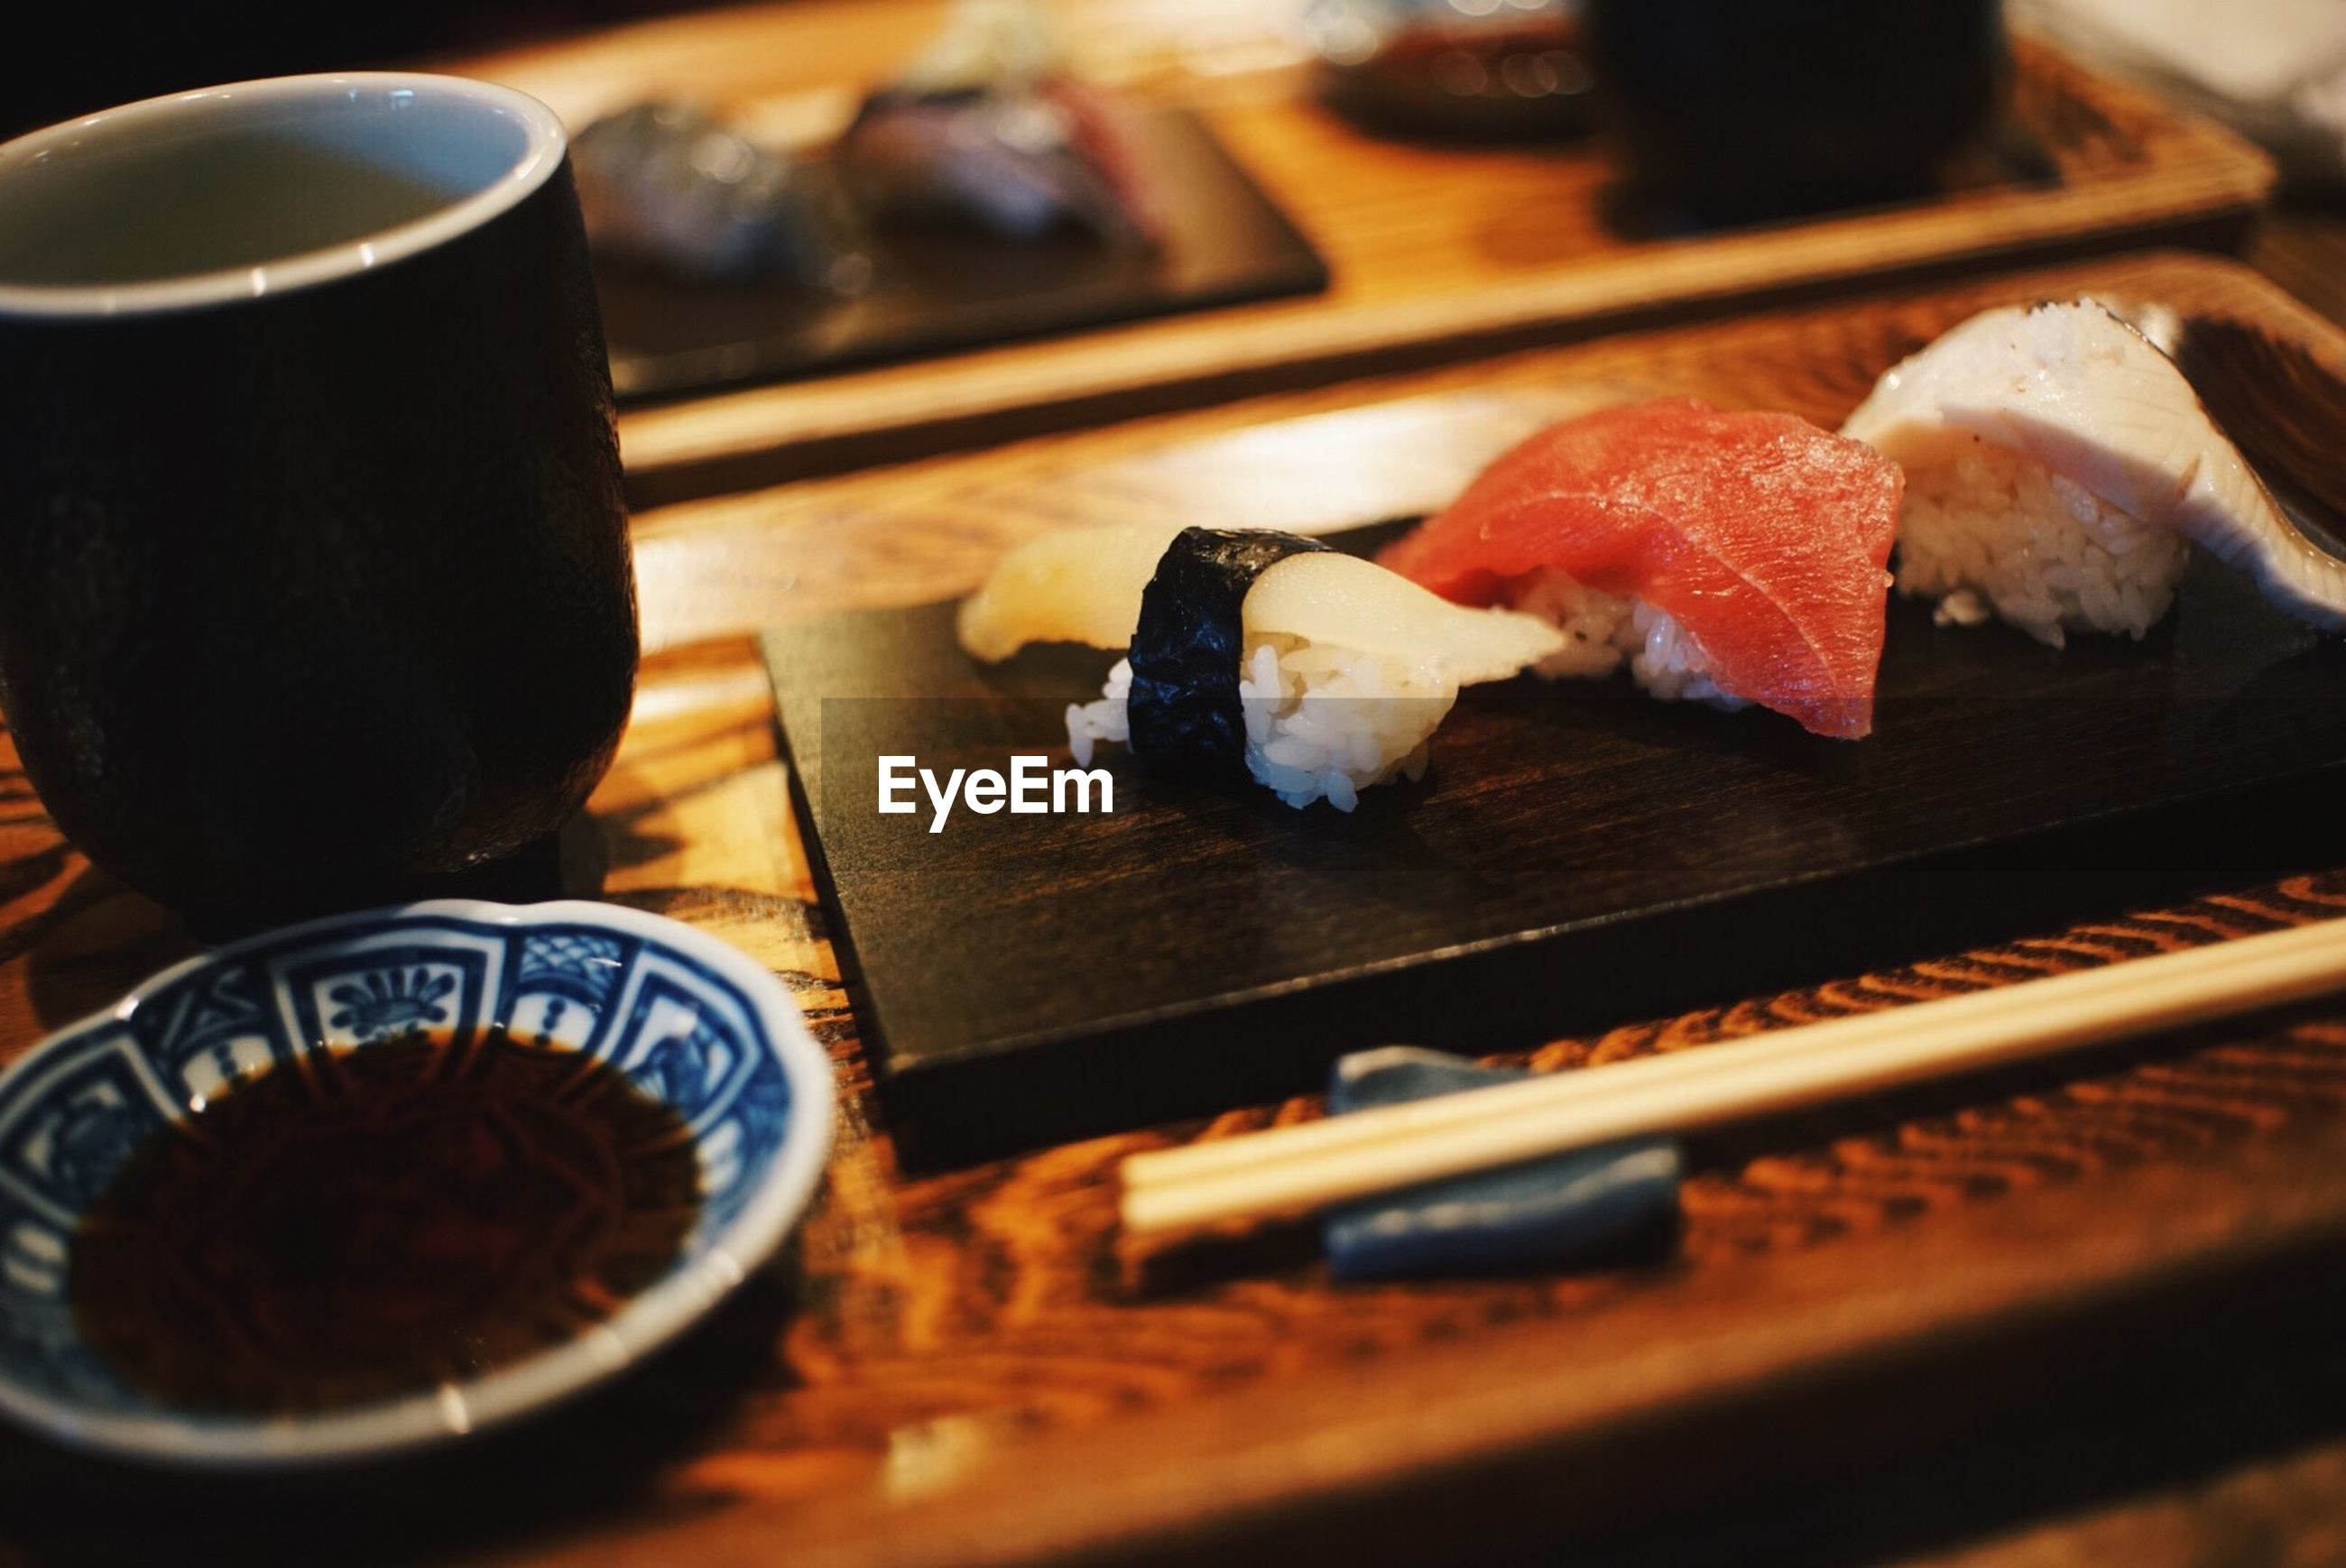 Close-up of sushi and drink on table